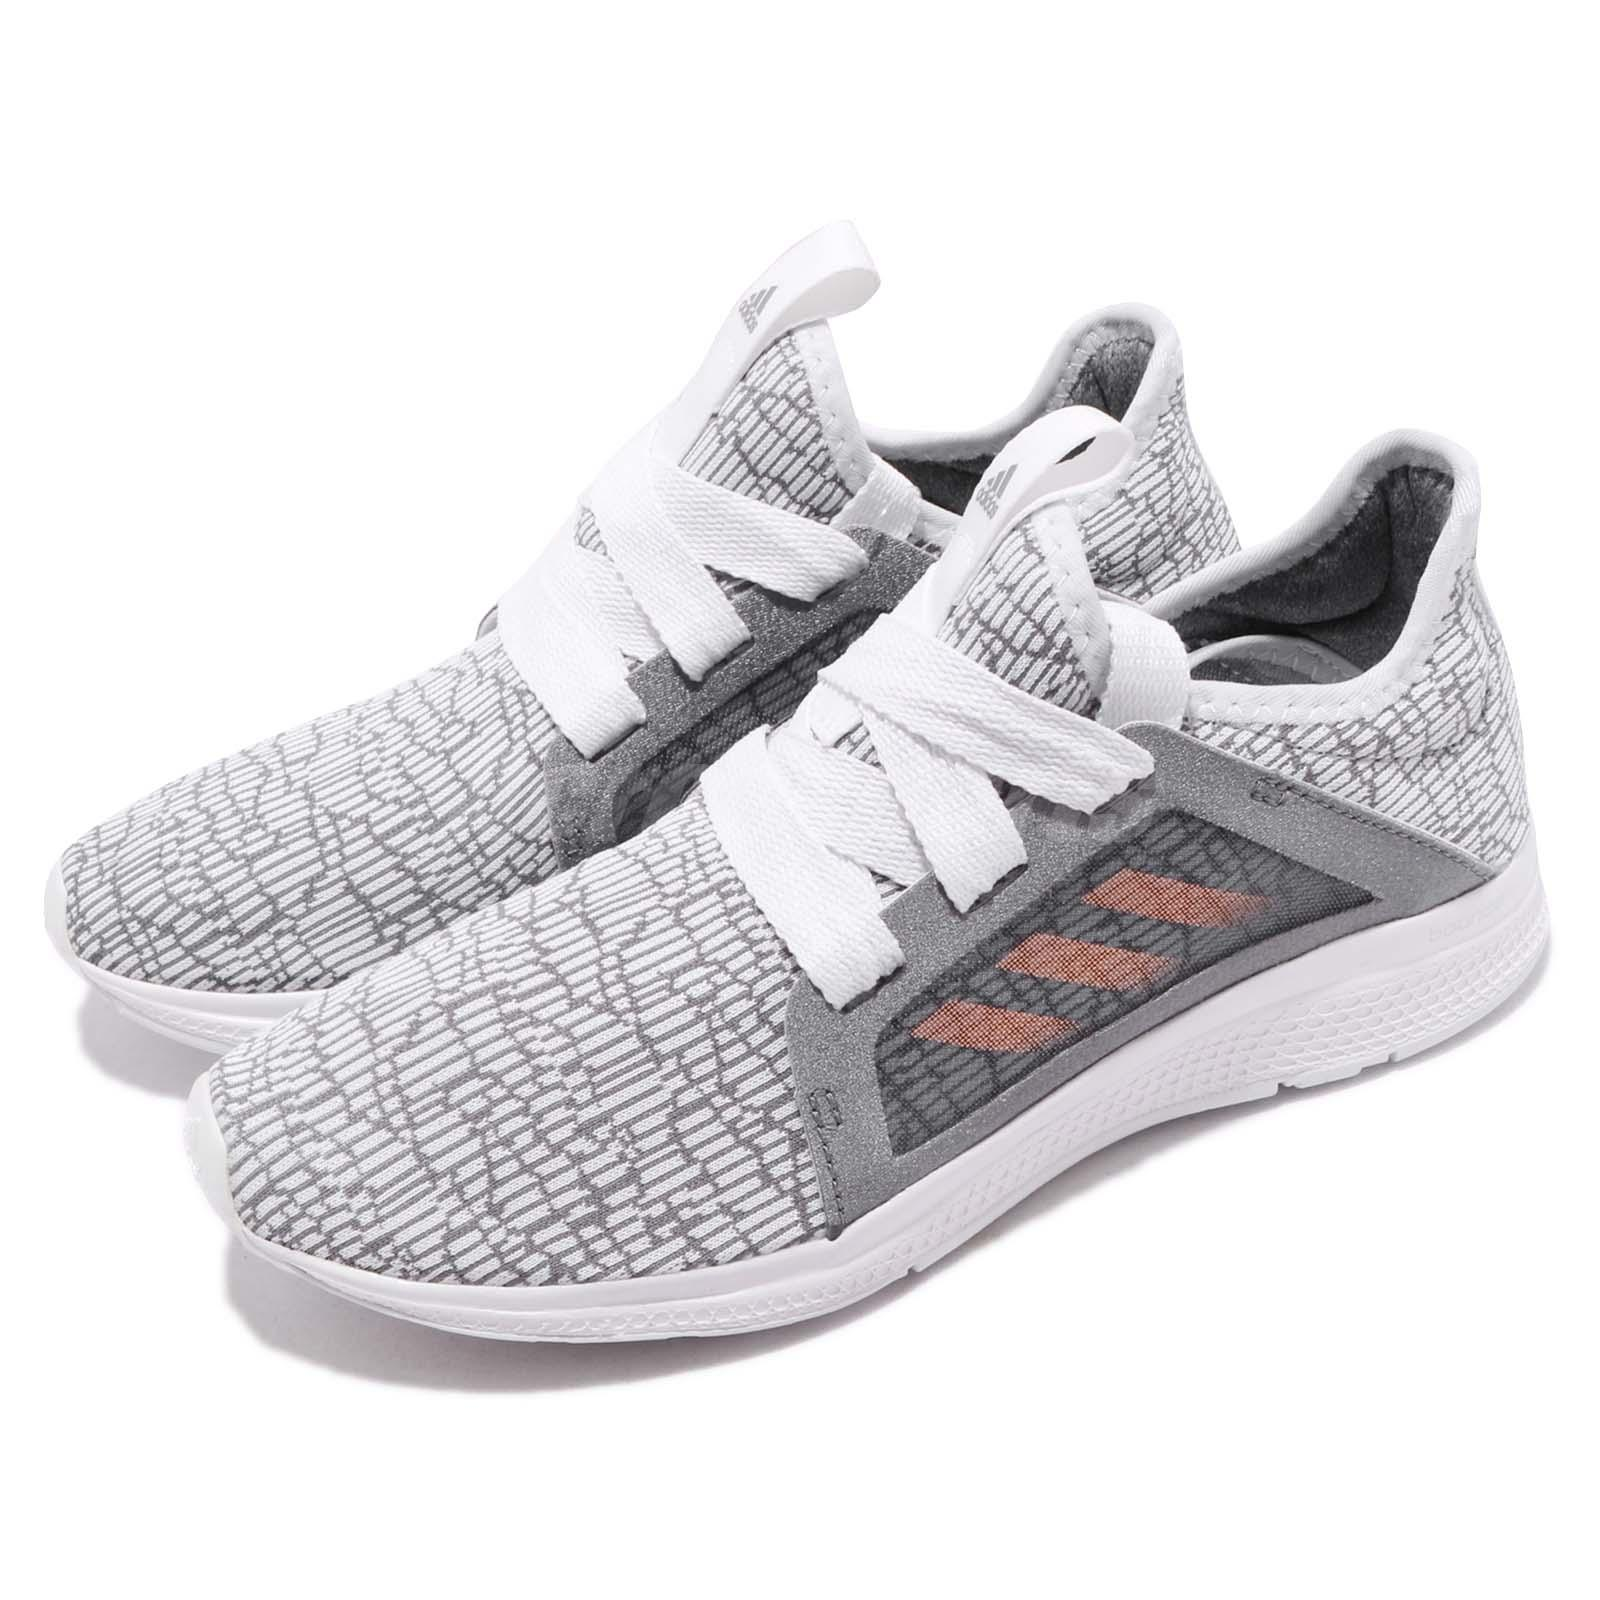 b7c23f2ce64a3 Details about adidas Edge Lux J Grey Haze Coral White Kid Junior Women  Running Shoes B42194